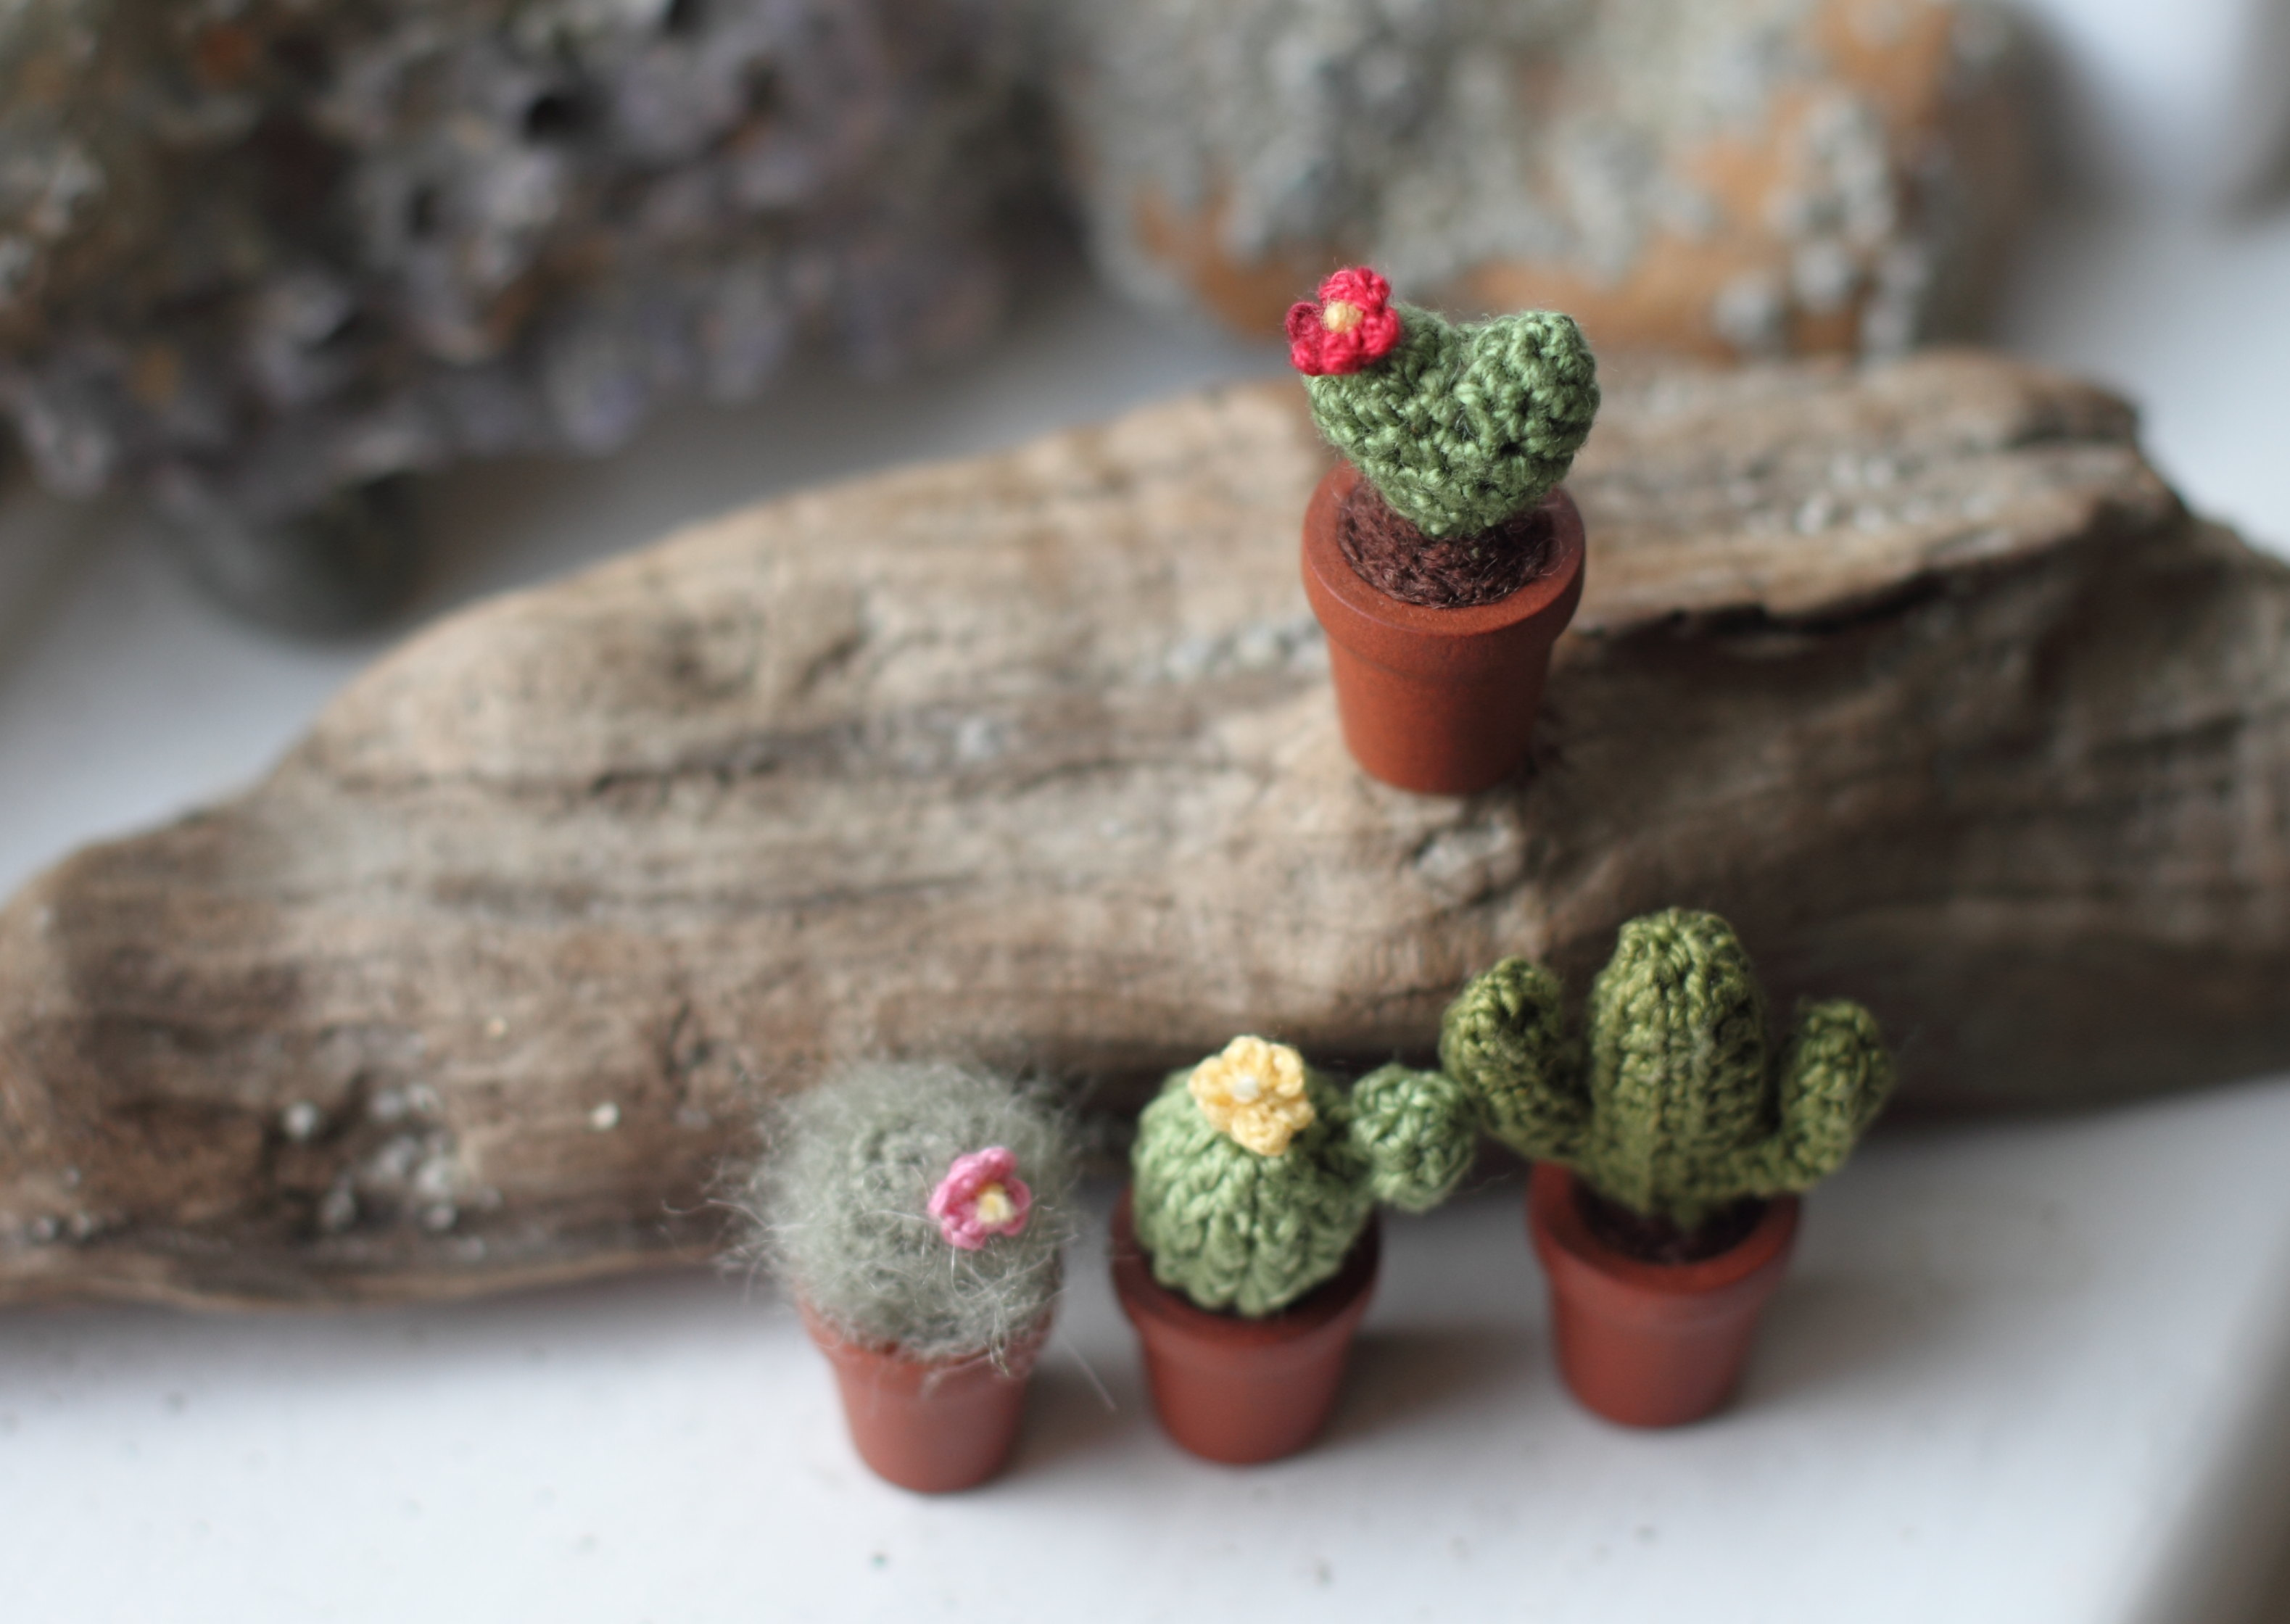 fancy knittles, fancyknittles, miniature crochet, tiny crochet, crochet cactus, crochet cactus decoration,